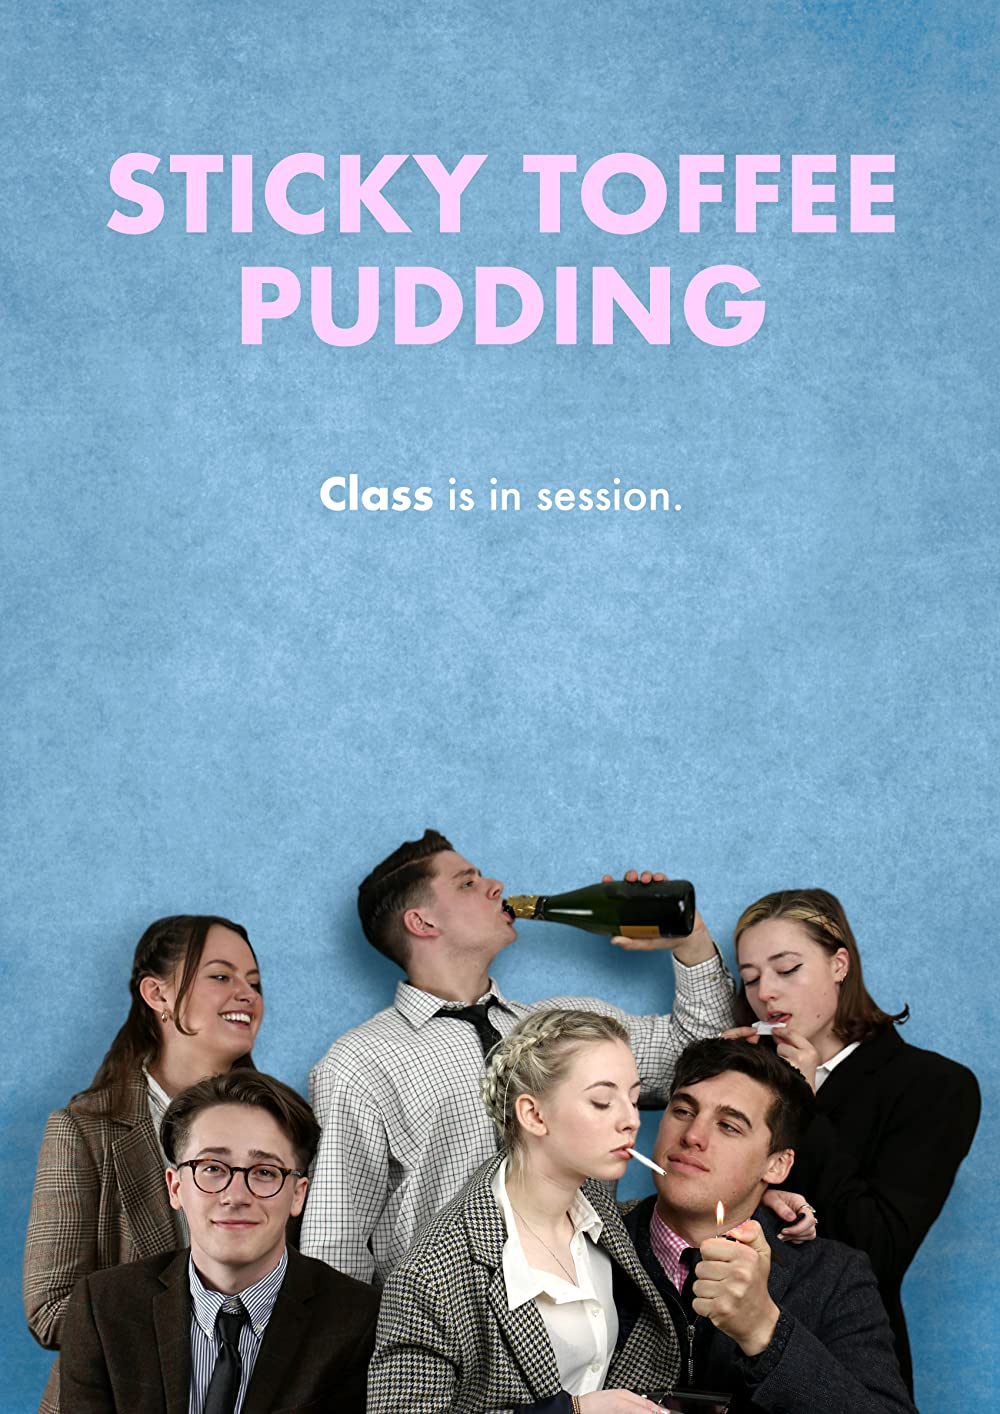 Download Sticky Toffee Pudding (2020) WebRip 720p Full Movie [In English] With Hindi Subtitles Full Movie Online On 1xcinema.com